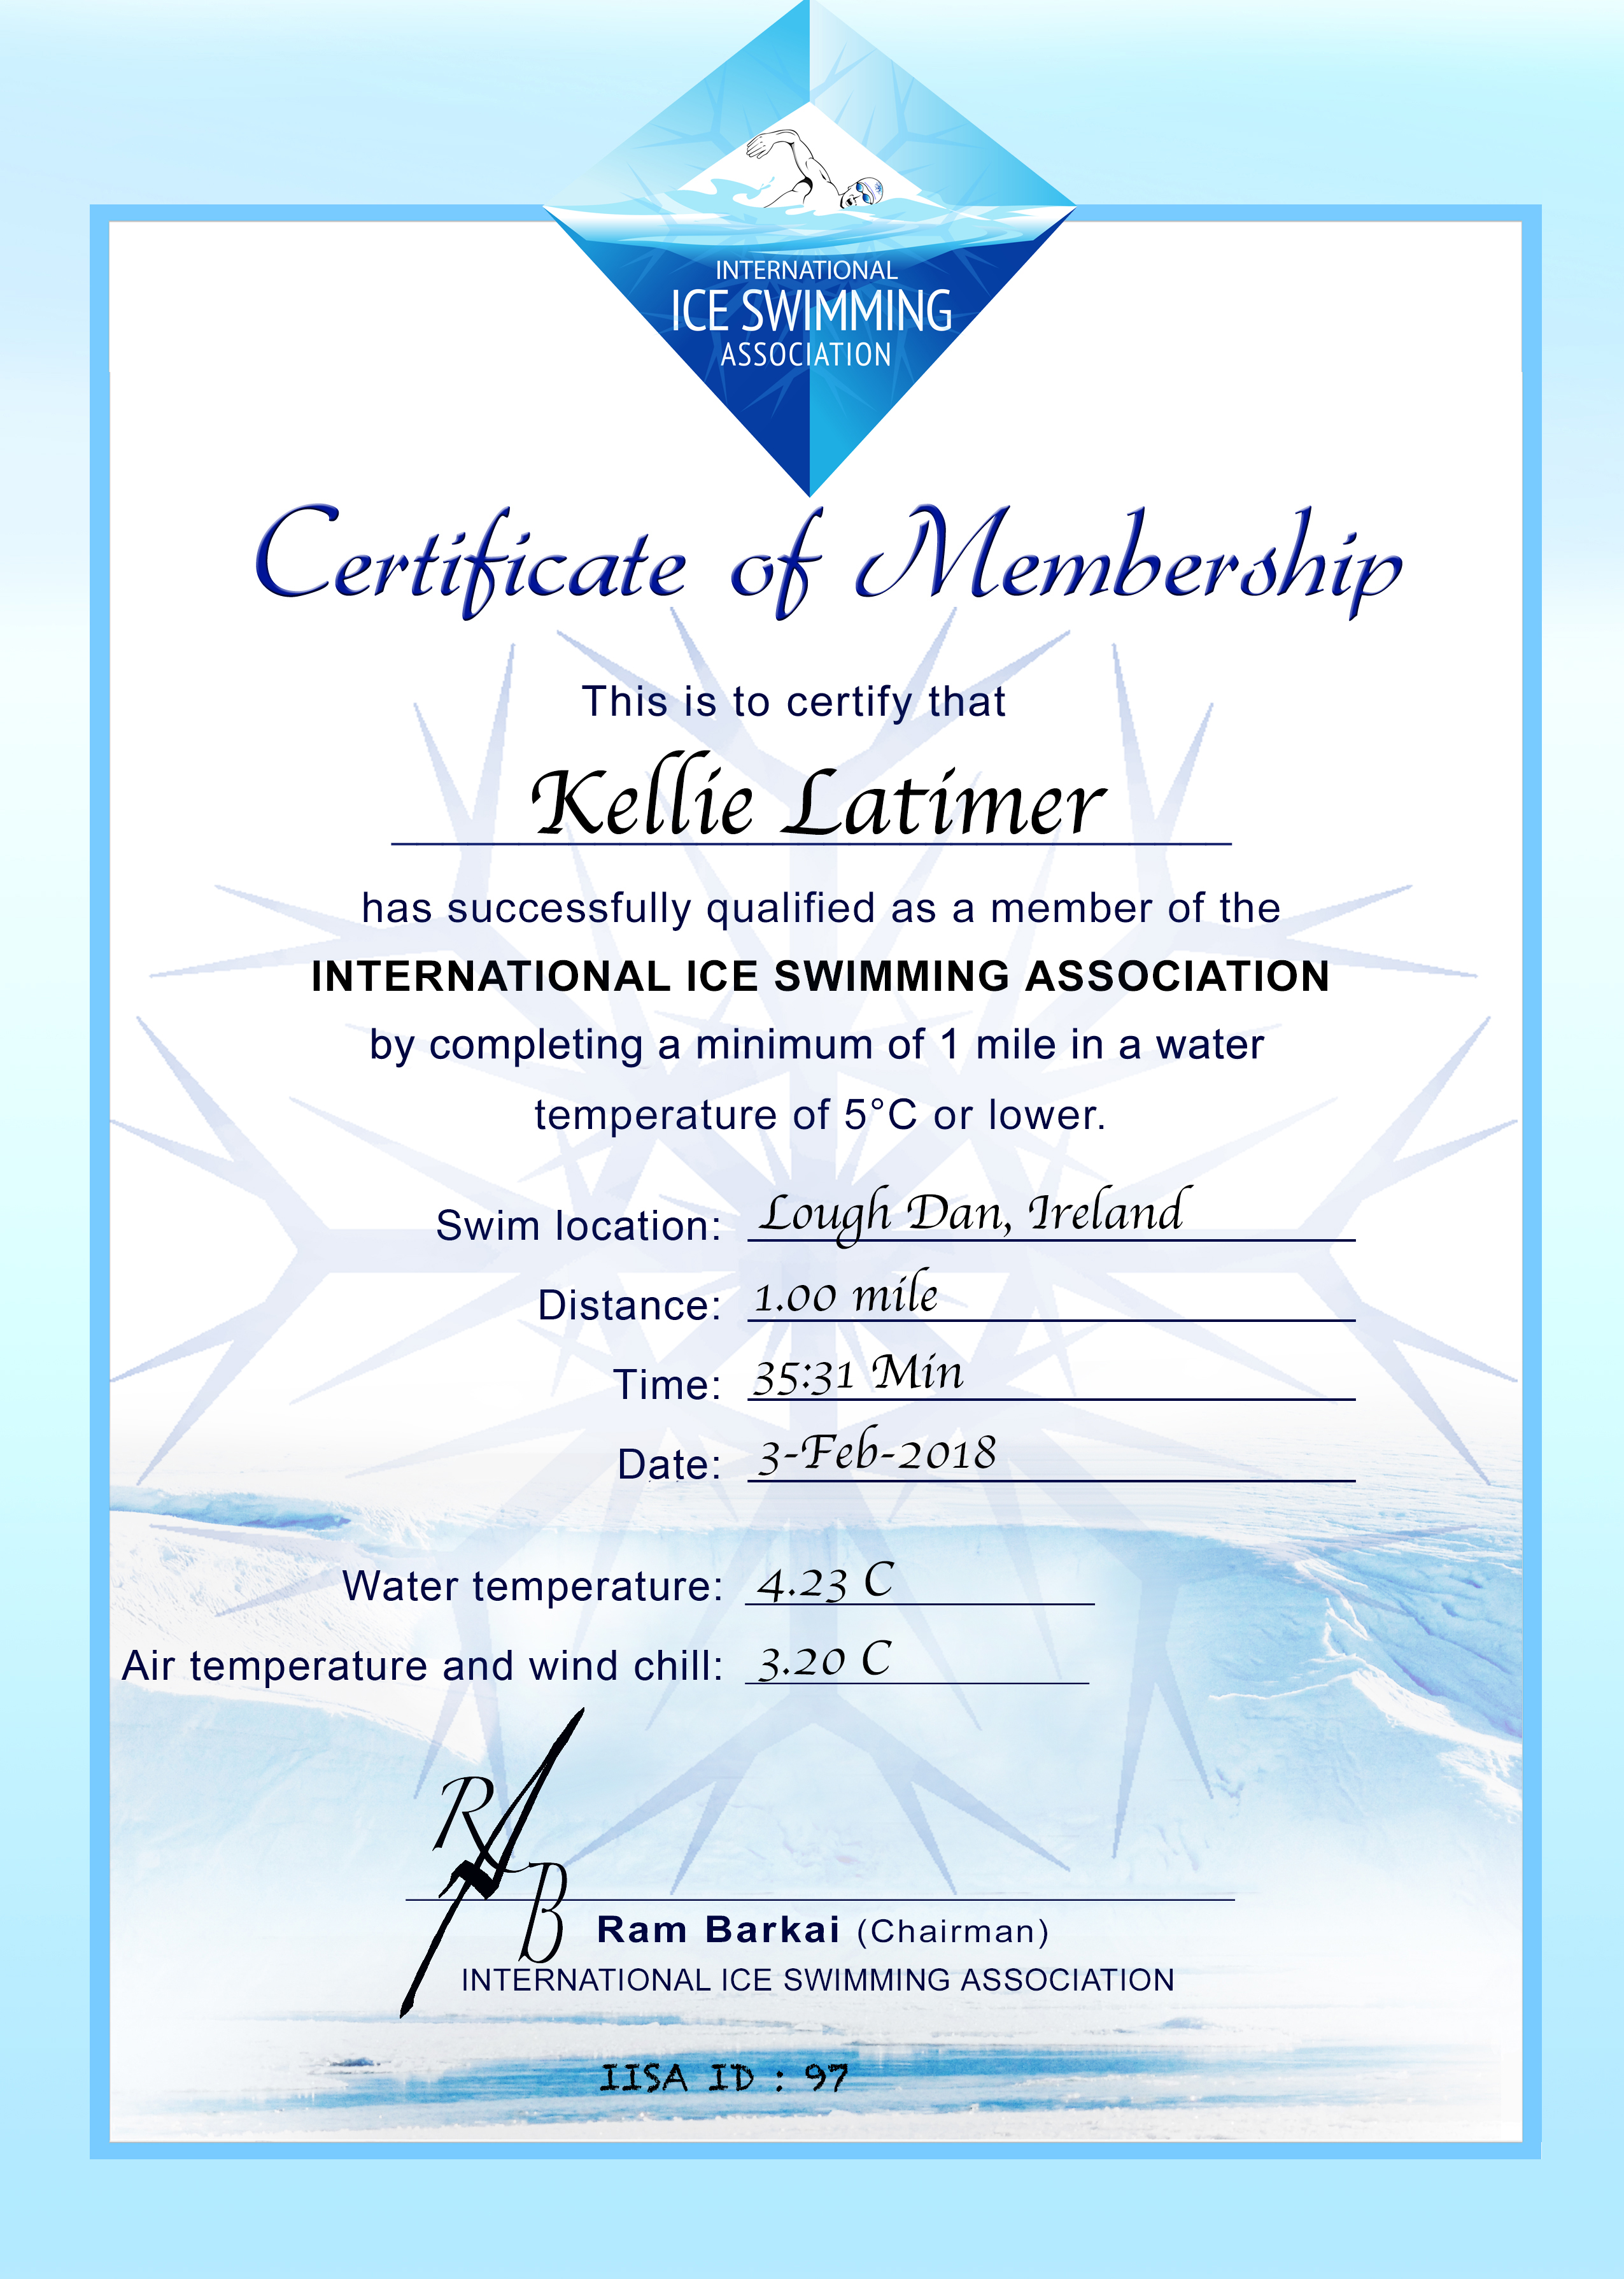 Ice Mile Certificate - Kellie Latimer